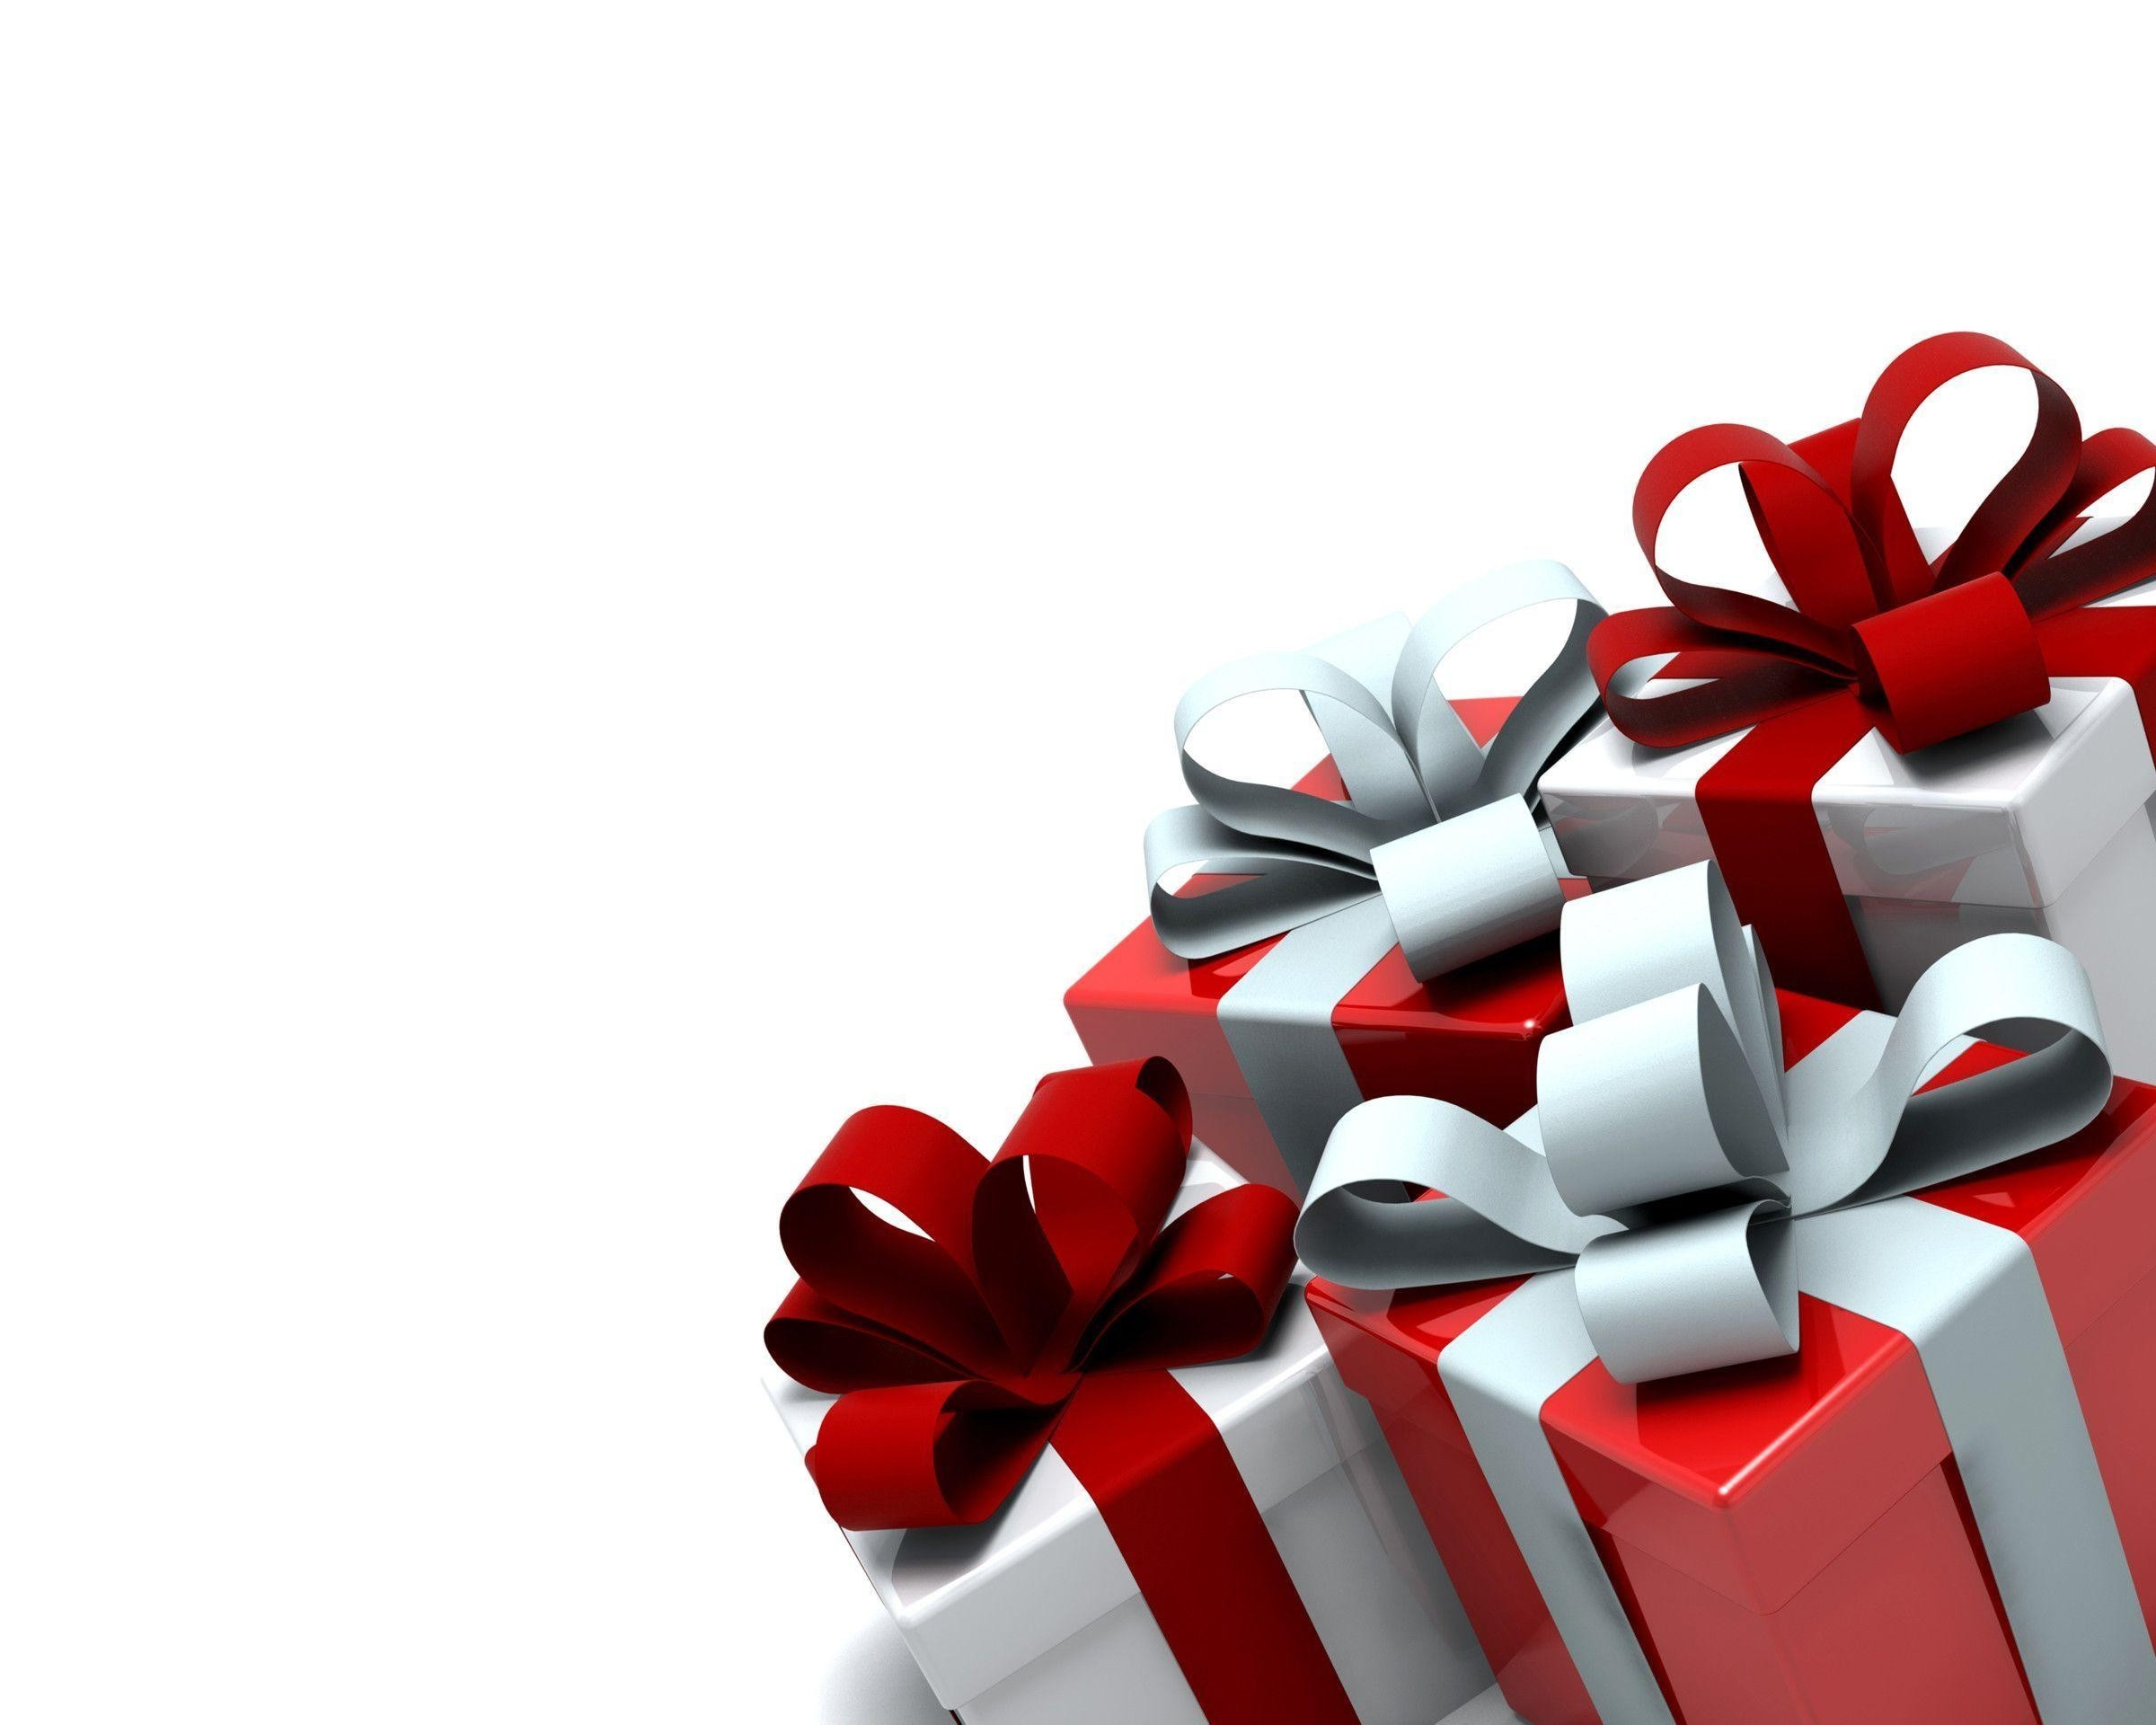 Res: 2400x1920, Christmas Gift Backgrounds Wallpaper Cave